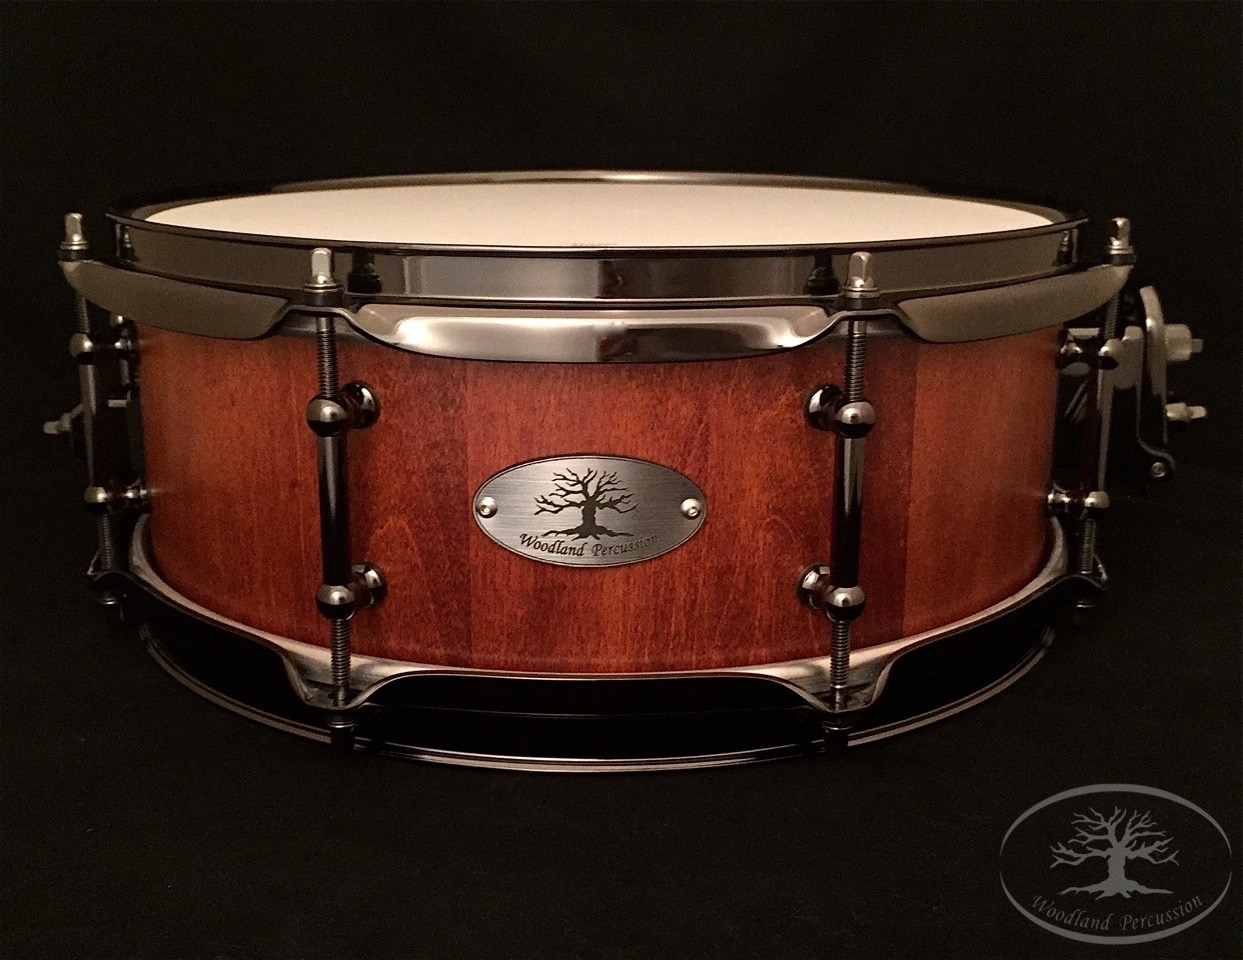 13x5x1/2 Hard mMaple  Weathered Cherry stain finish with Black Chrome hardware